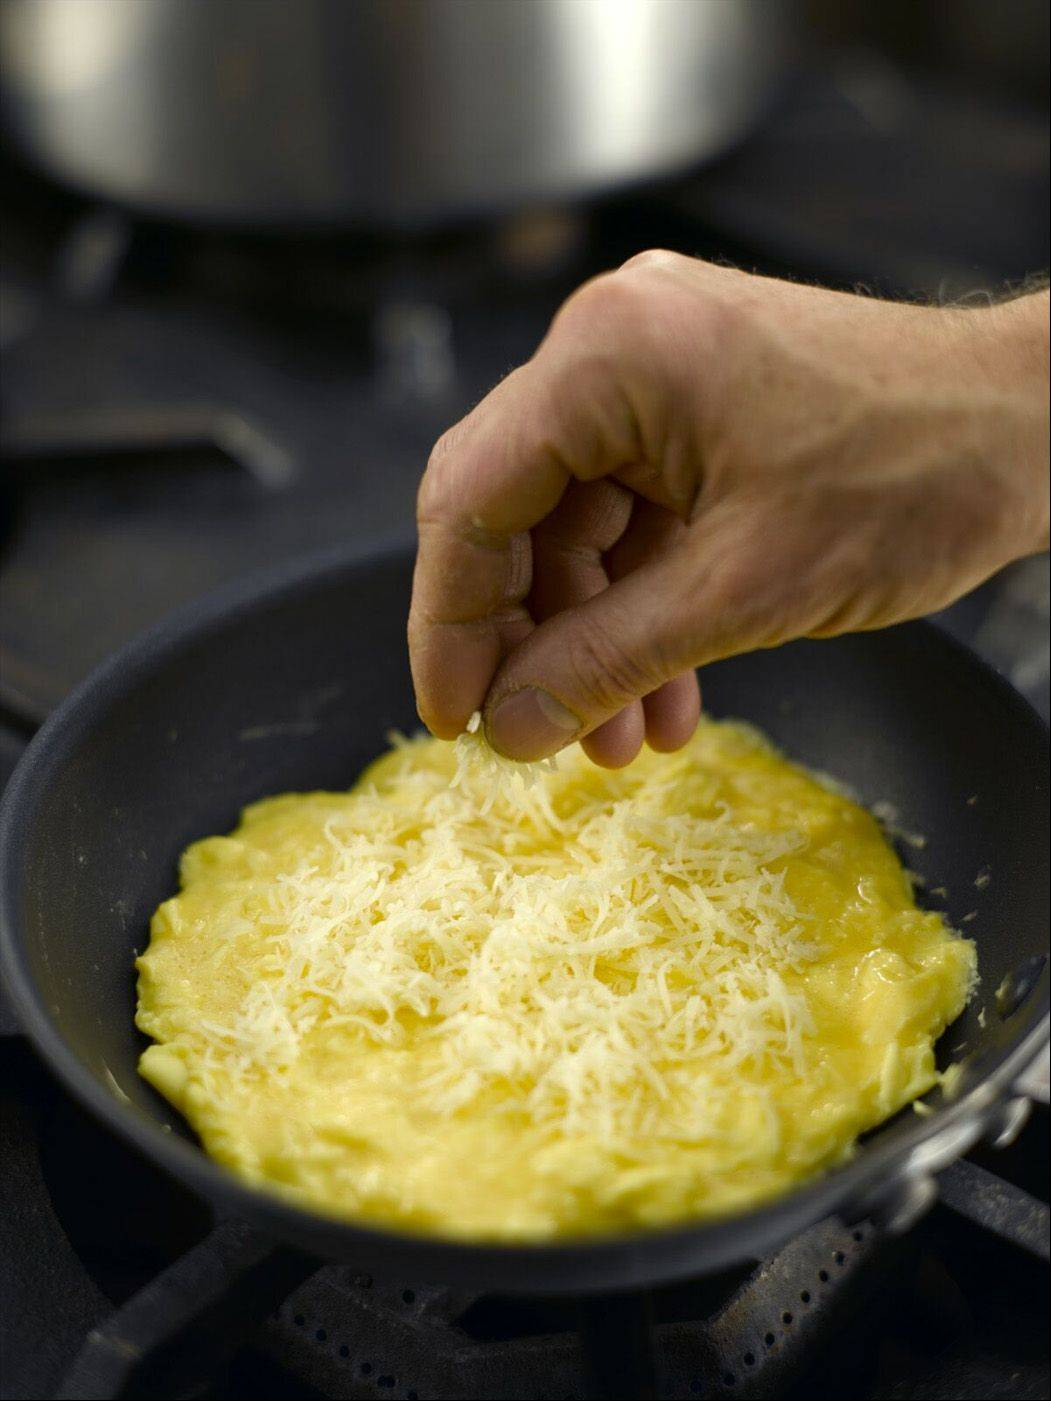 Omelets and other high-protein foods will be more popular for breakfast in 2013, predicts Supermarket Guru Phil Lempert.